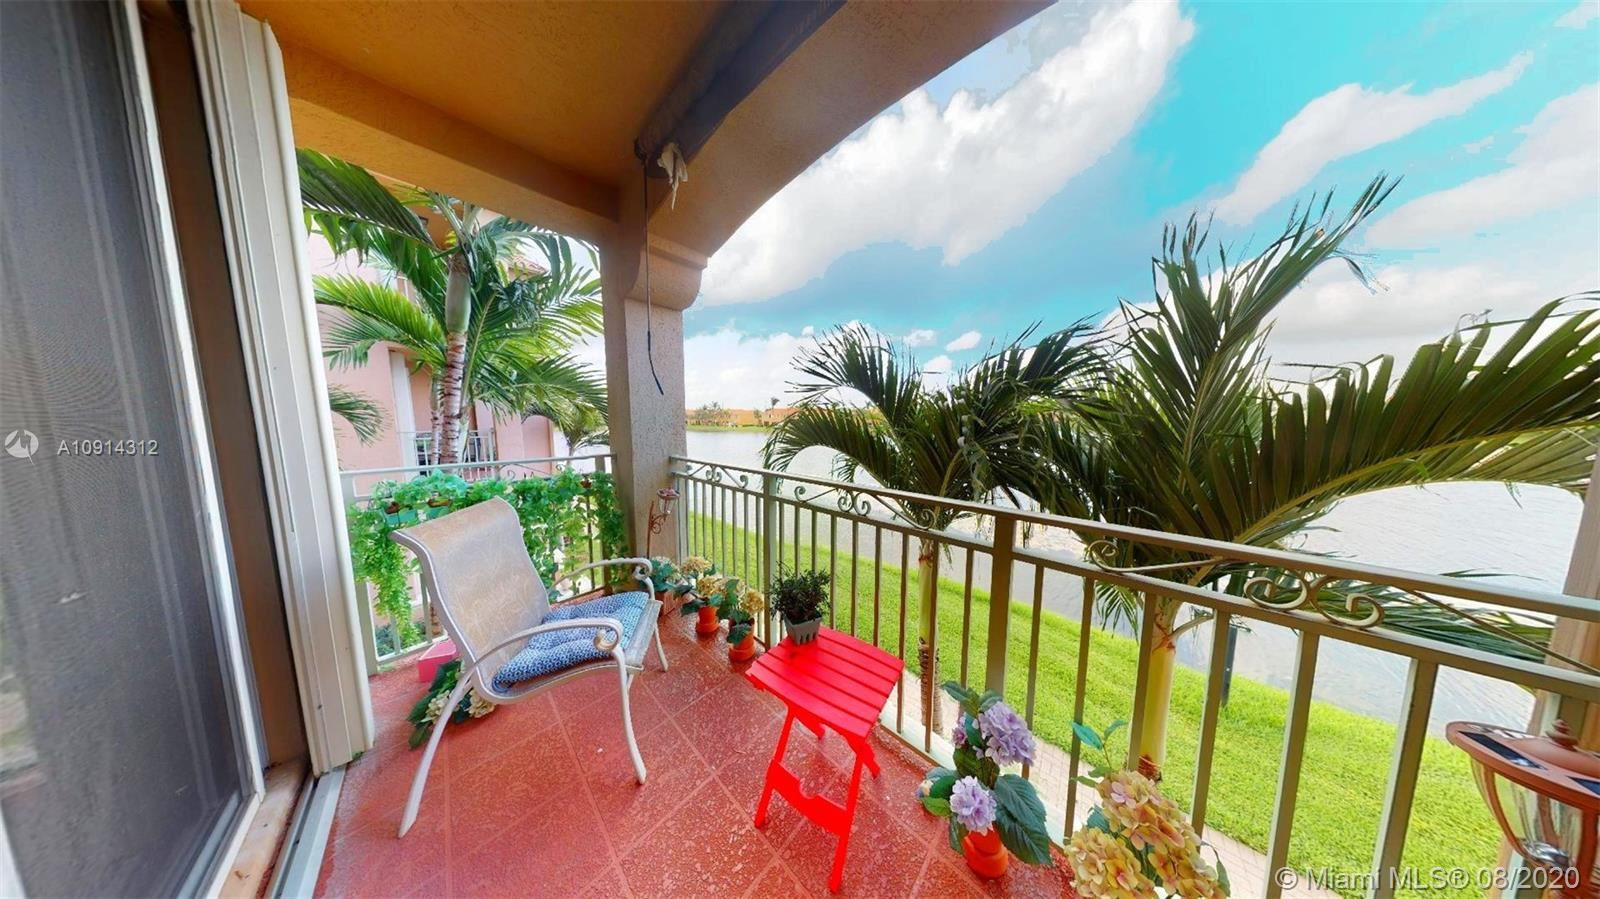 6340 NW 114th Ave #127, Doral, FL 33178 - #: A10914312